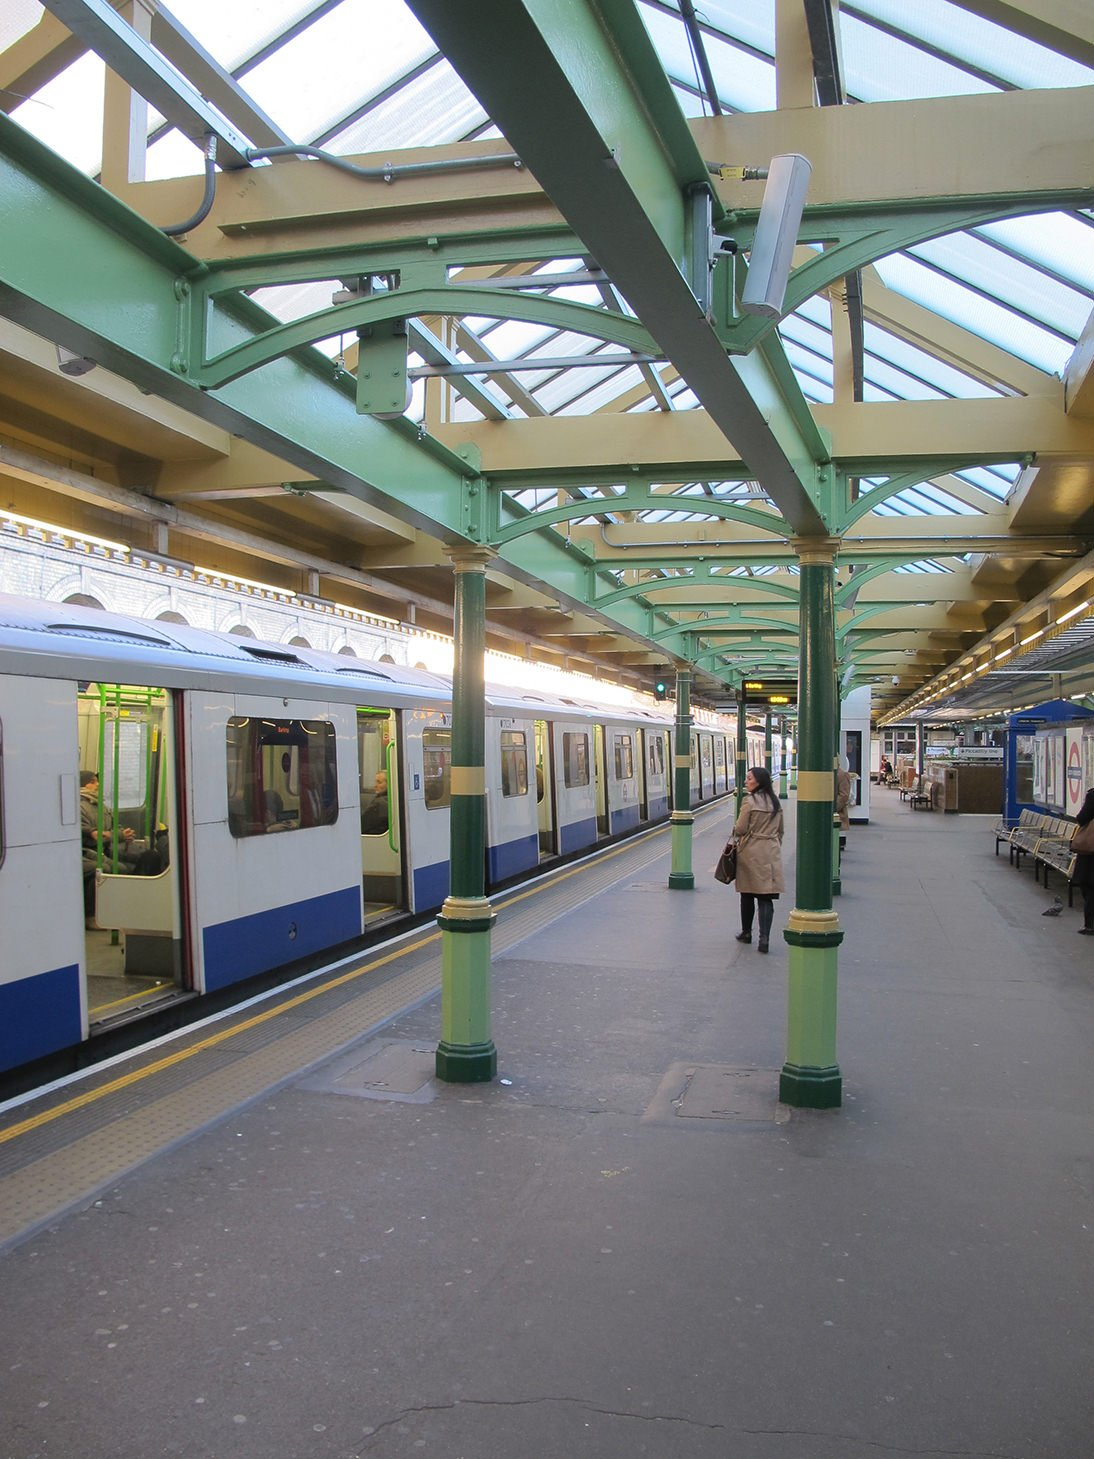 London, Tube, South Kensington, travel, London